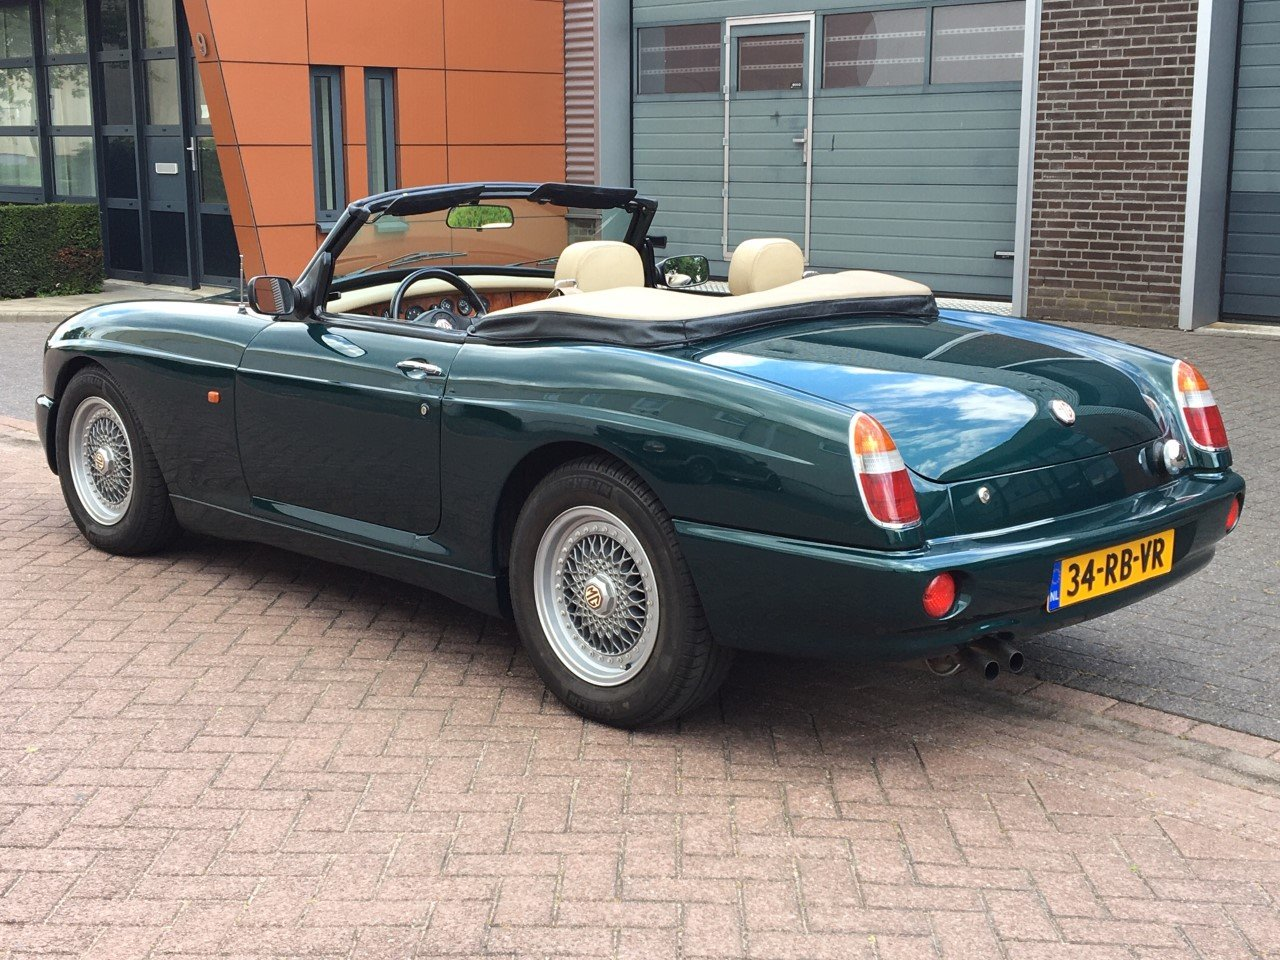 1993 MG RV8 LHD British Racing Green For Sale (picture 2 of 6)